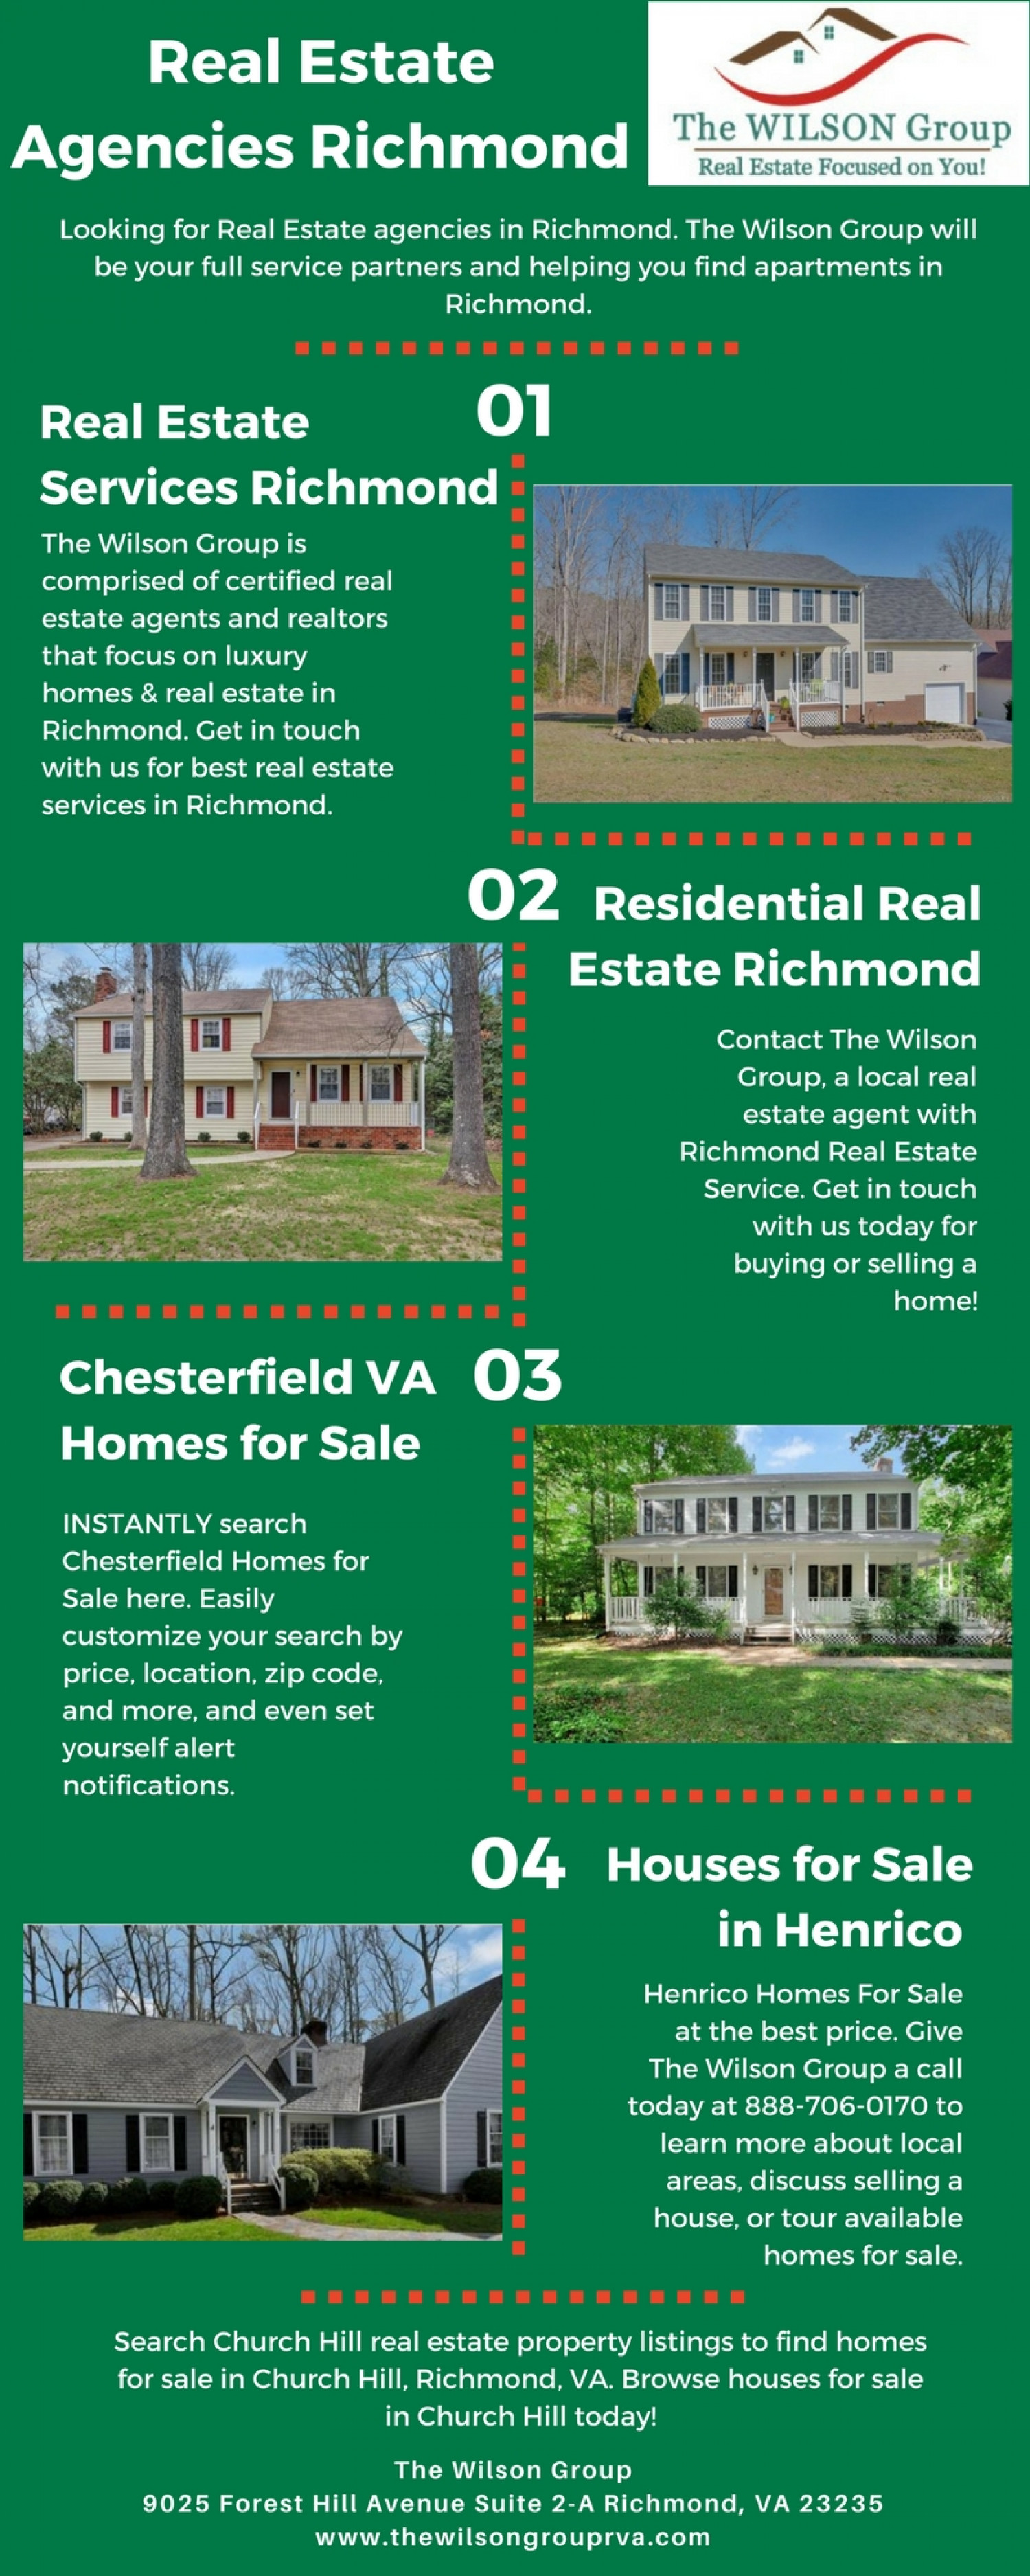 Real Estate Services Richmond Infographic